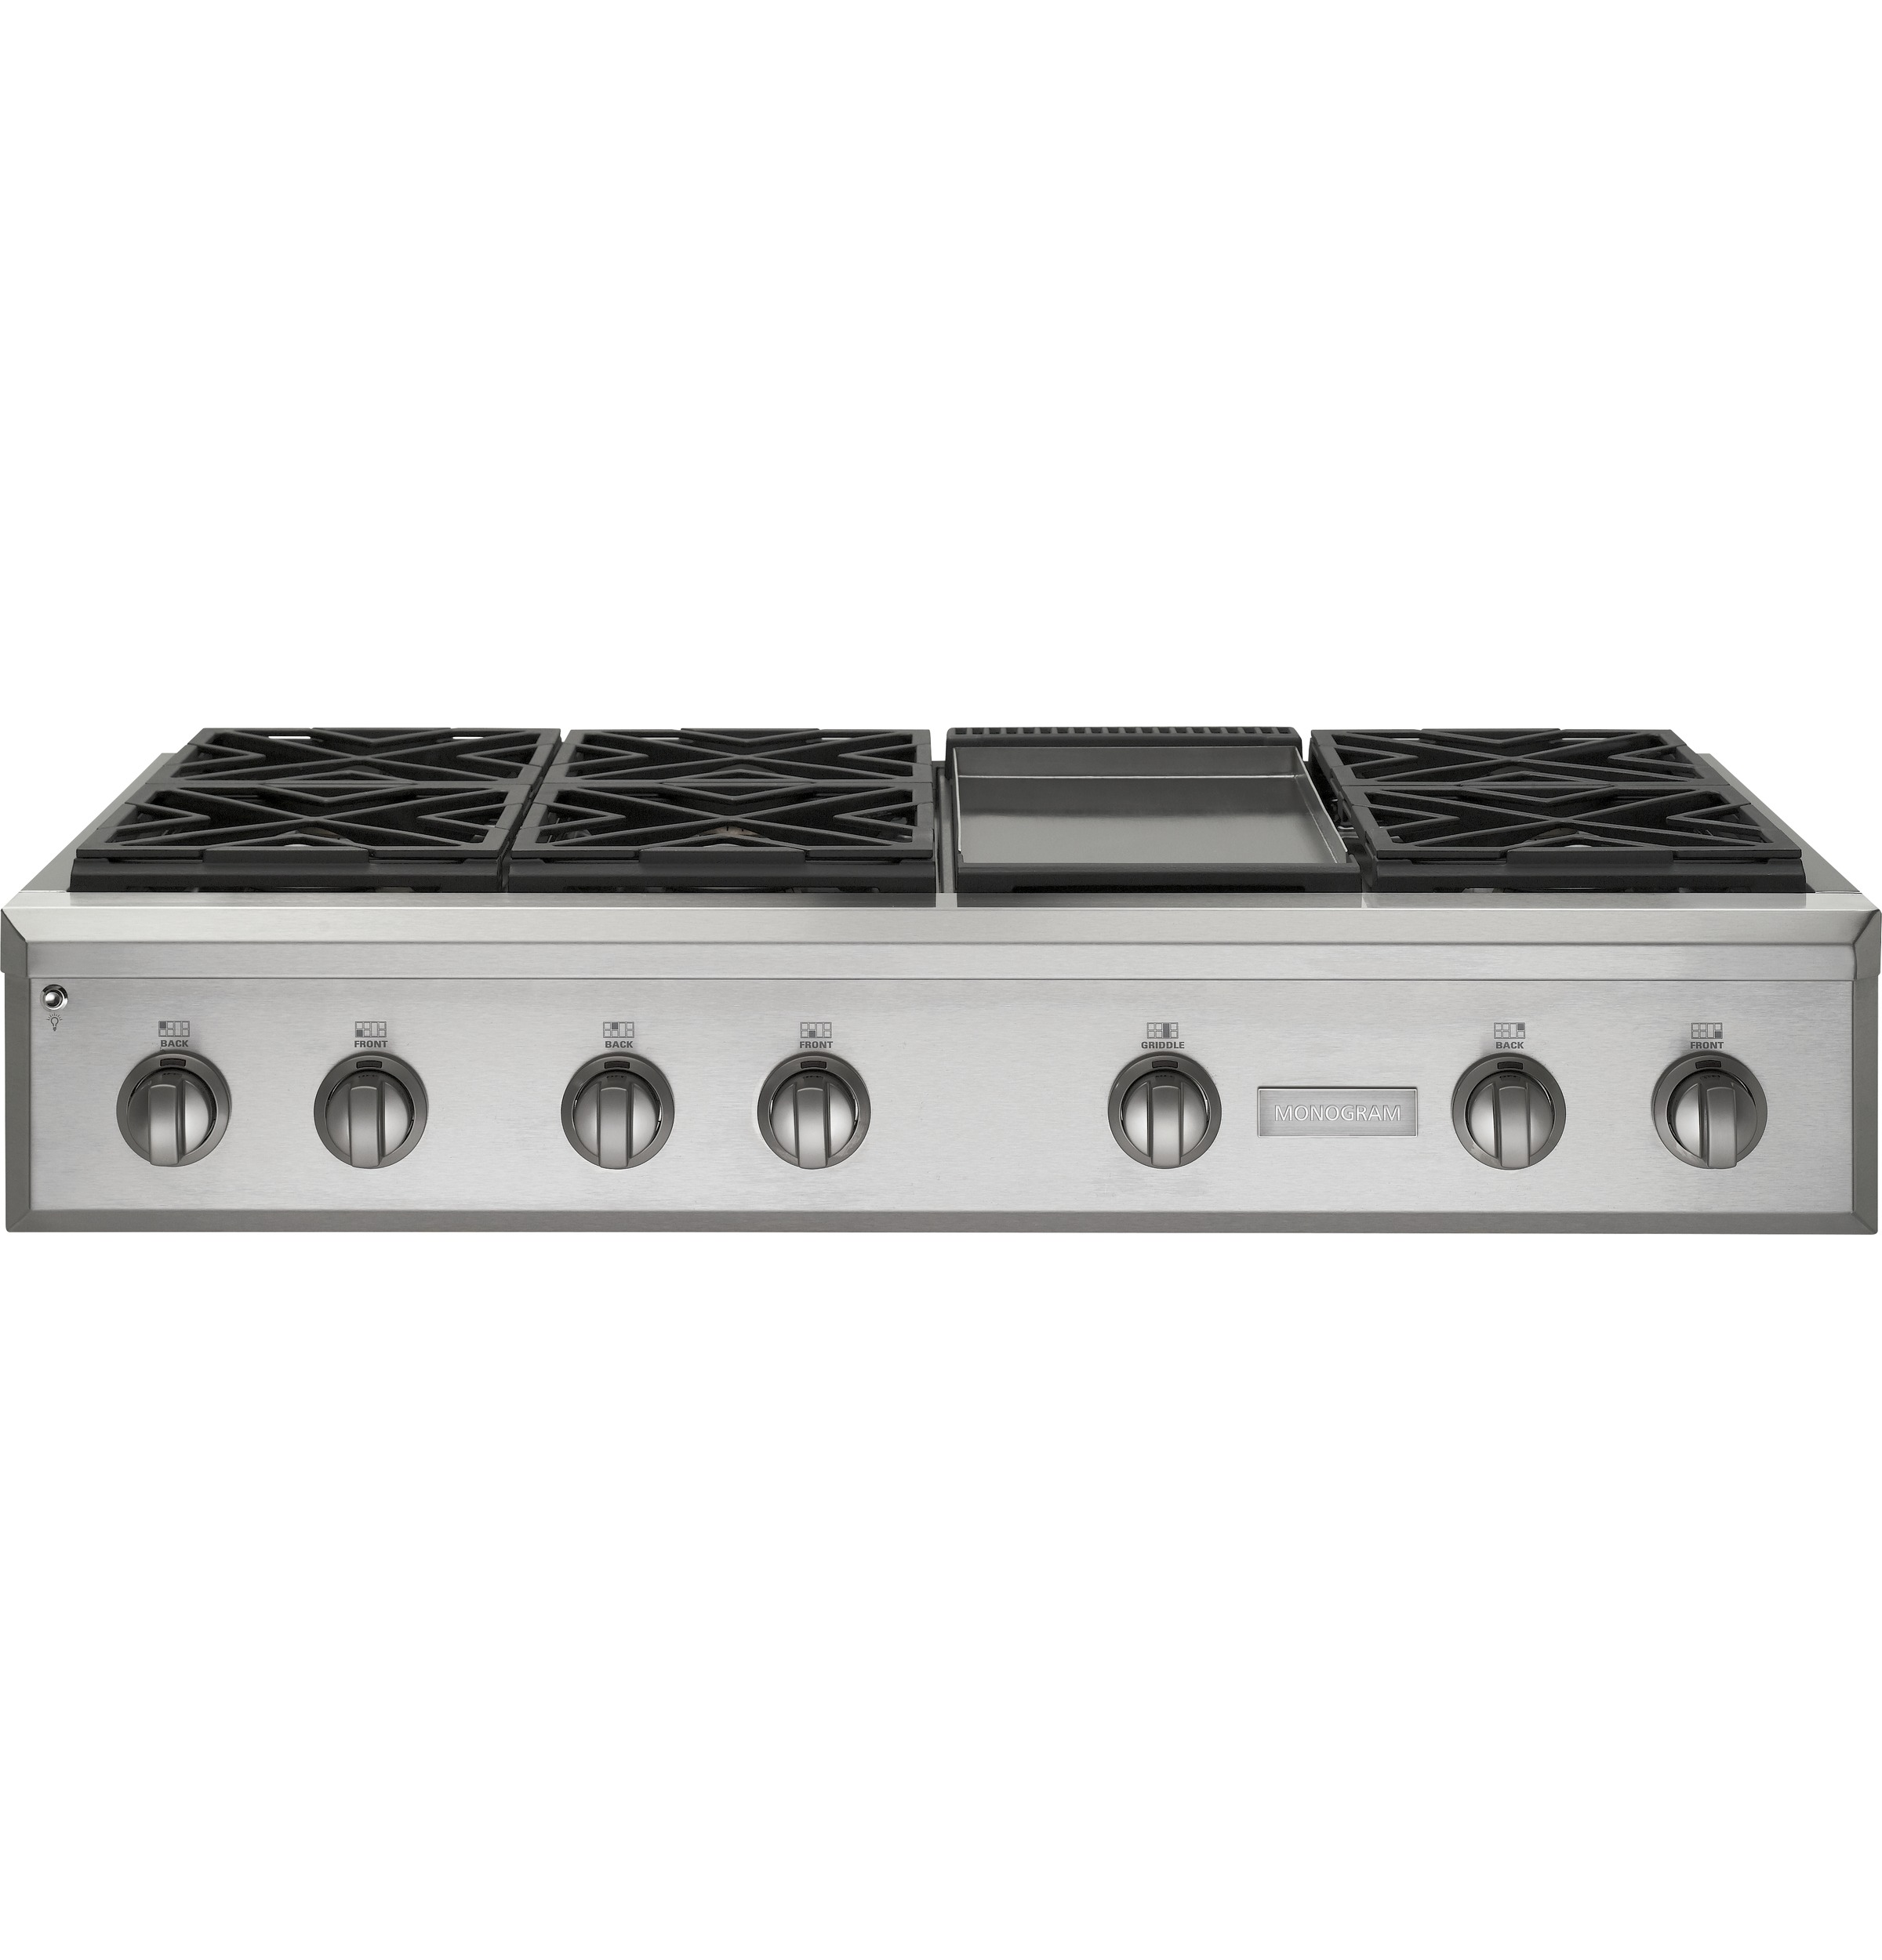 "Monogram Monogram 48"" Professional Gas Rangetop with 6 Burners and Griddle (Natural Gas)"